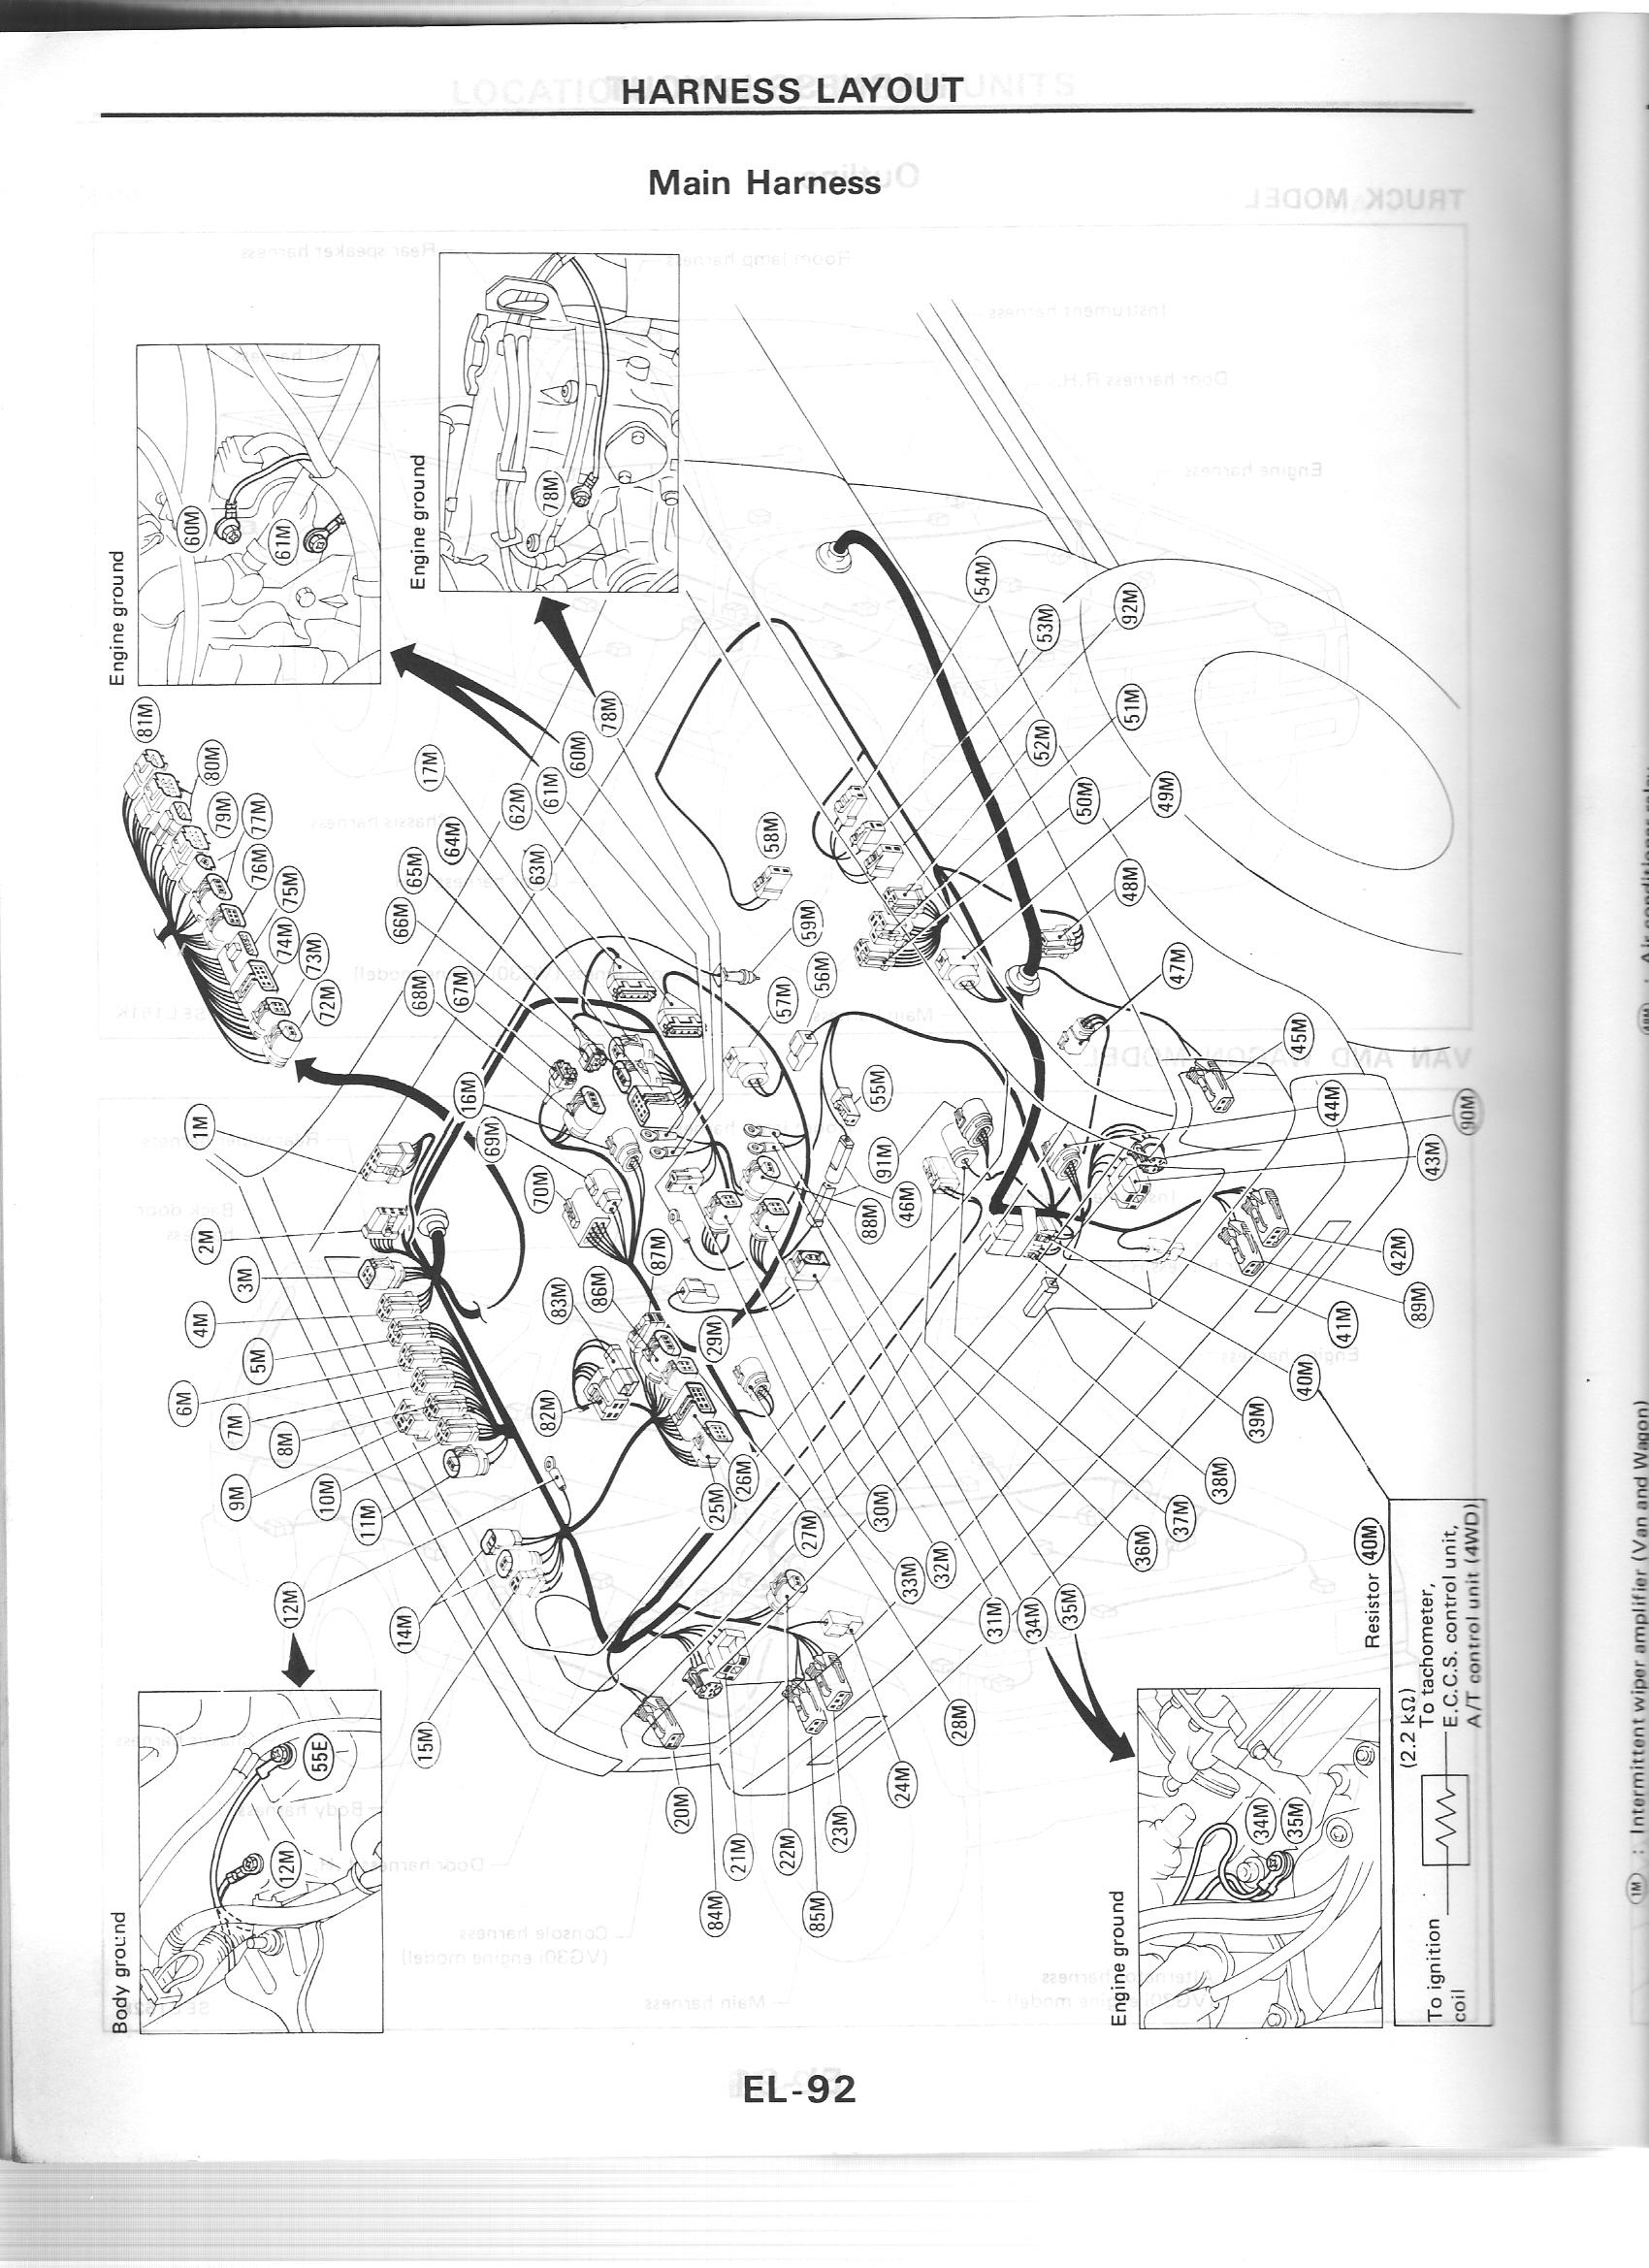 1986 Nissan D21 Engine Diagram. Nissan. Auto Wiring Diagram